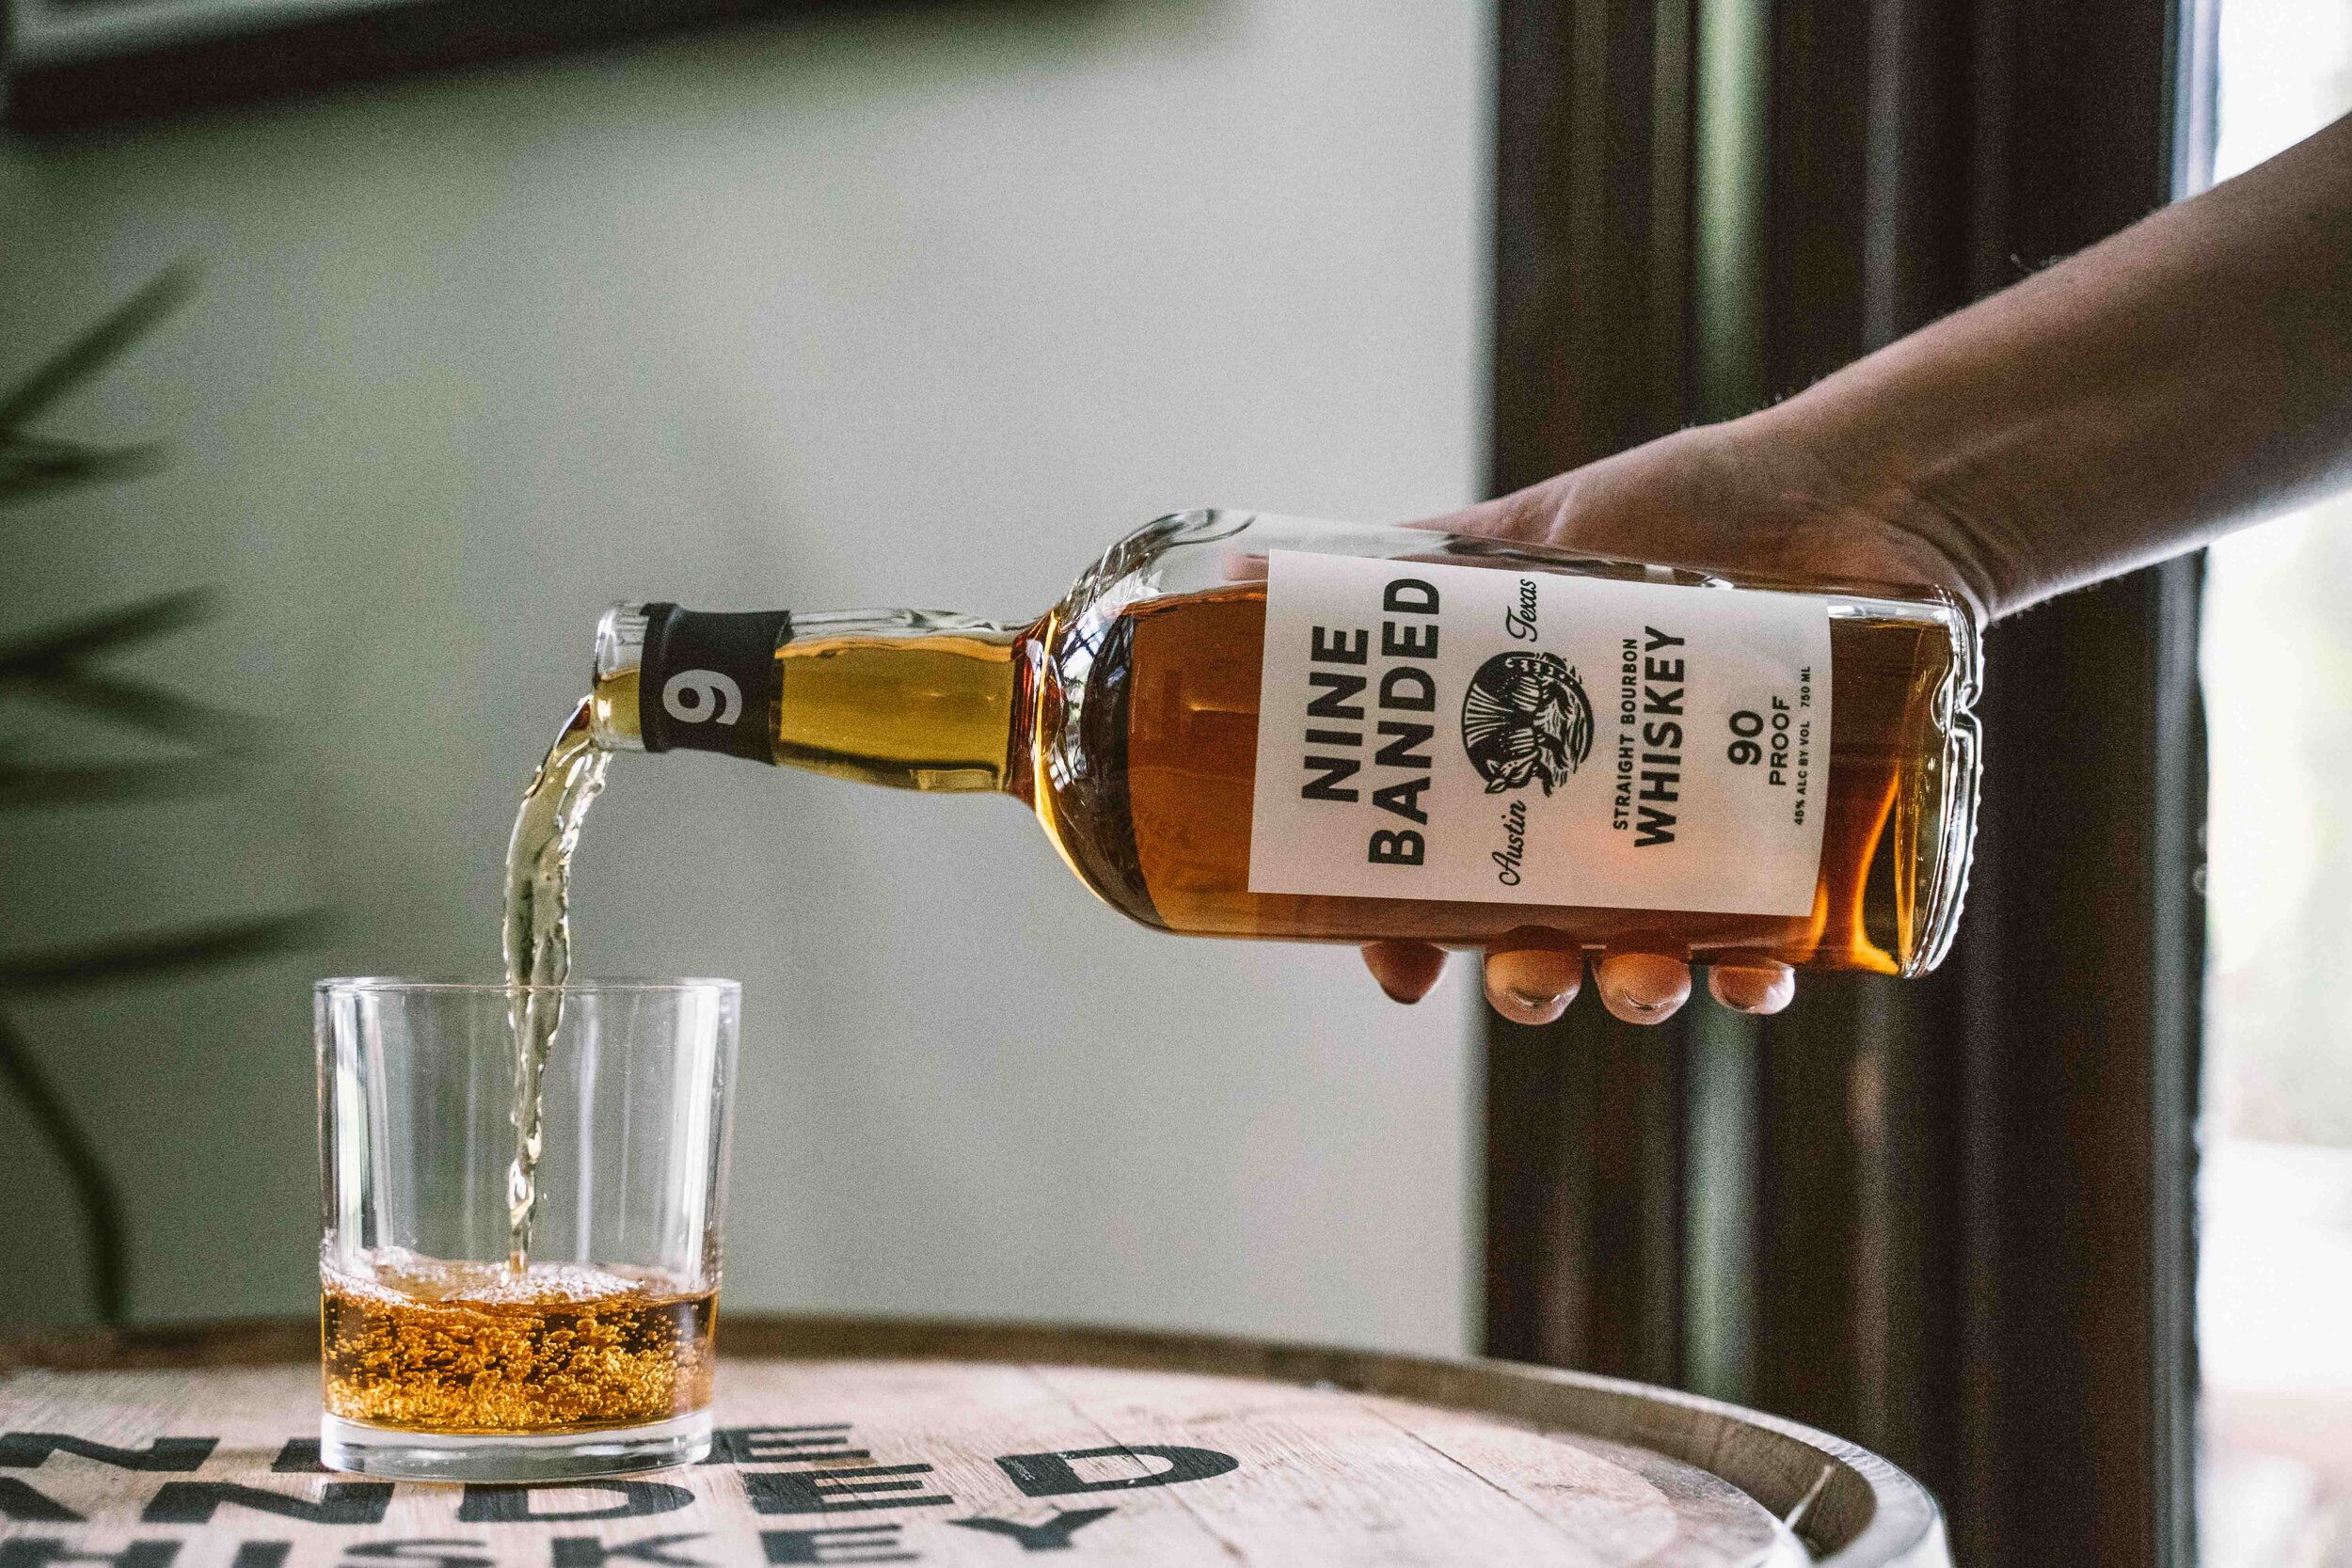 Whiskey is a spirit worth celebrating and preserving. - We set out to make a whiskey that's as good as it gets without any pretense. A whiskey that tastes like nothing other than damn good whiskey.